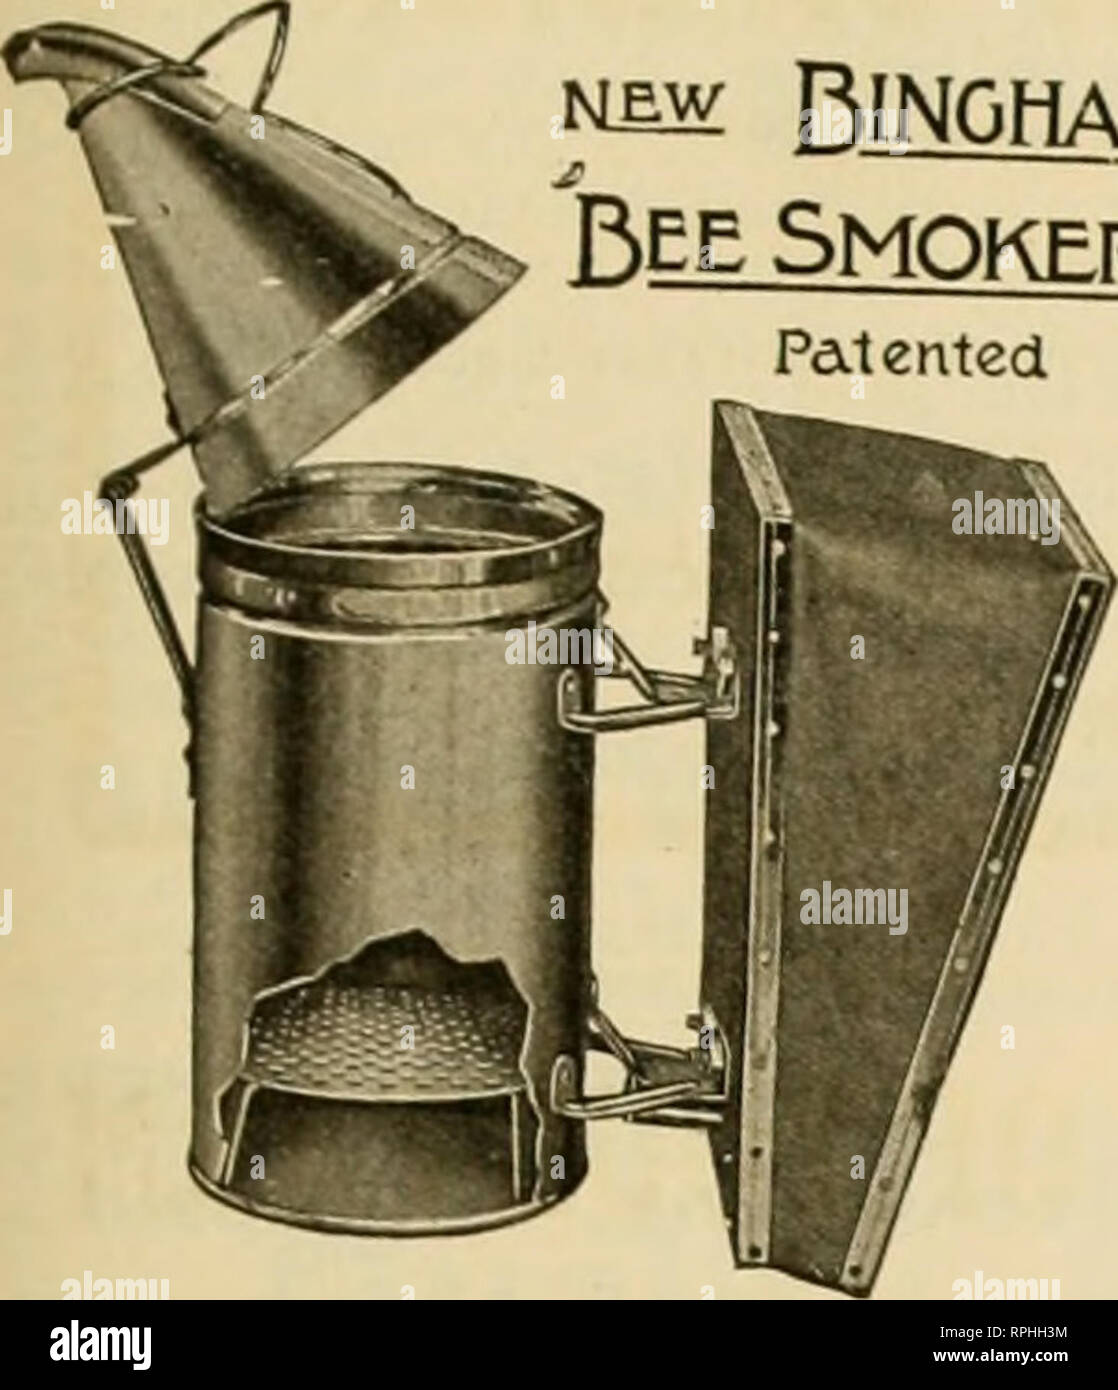 """. American bee journal. Bee culture; Bees. August, 1915. American Ree Journal Bingham Bee Smokers and Uncapping Knives i^sw Bingham Bee Smoker Patented. Have been on the market nearly 10 years, and are the standard in this and many foreign countries. Insist on the genuine improved articles from your dealer or direct from manufacturers. Postage extra ship. vt. Price .Smoke Engine, 4 inch. 28 oz Ji 2^ Doctor i'A ' 2602 85 Conqueror 3 """" jj oz 75 Little Wonder 2% """" ib oz =;o Smoke Engine or Doctor in copper 50c extra Uncapping Knives, improved Cold Handle Stan'd Length 8H ' 20 oz 75 Ex - Stock Image"""